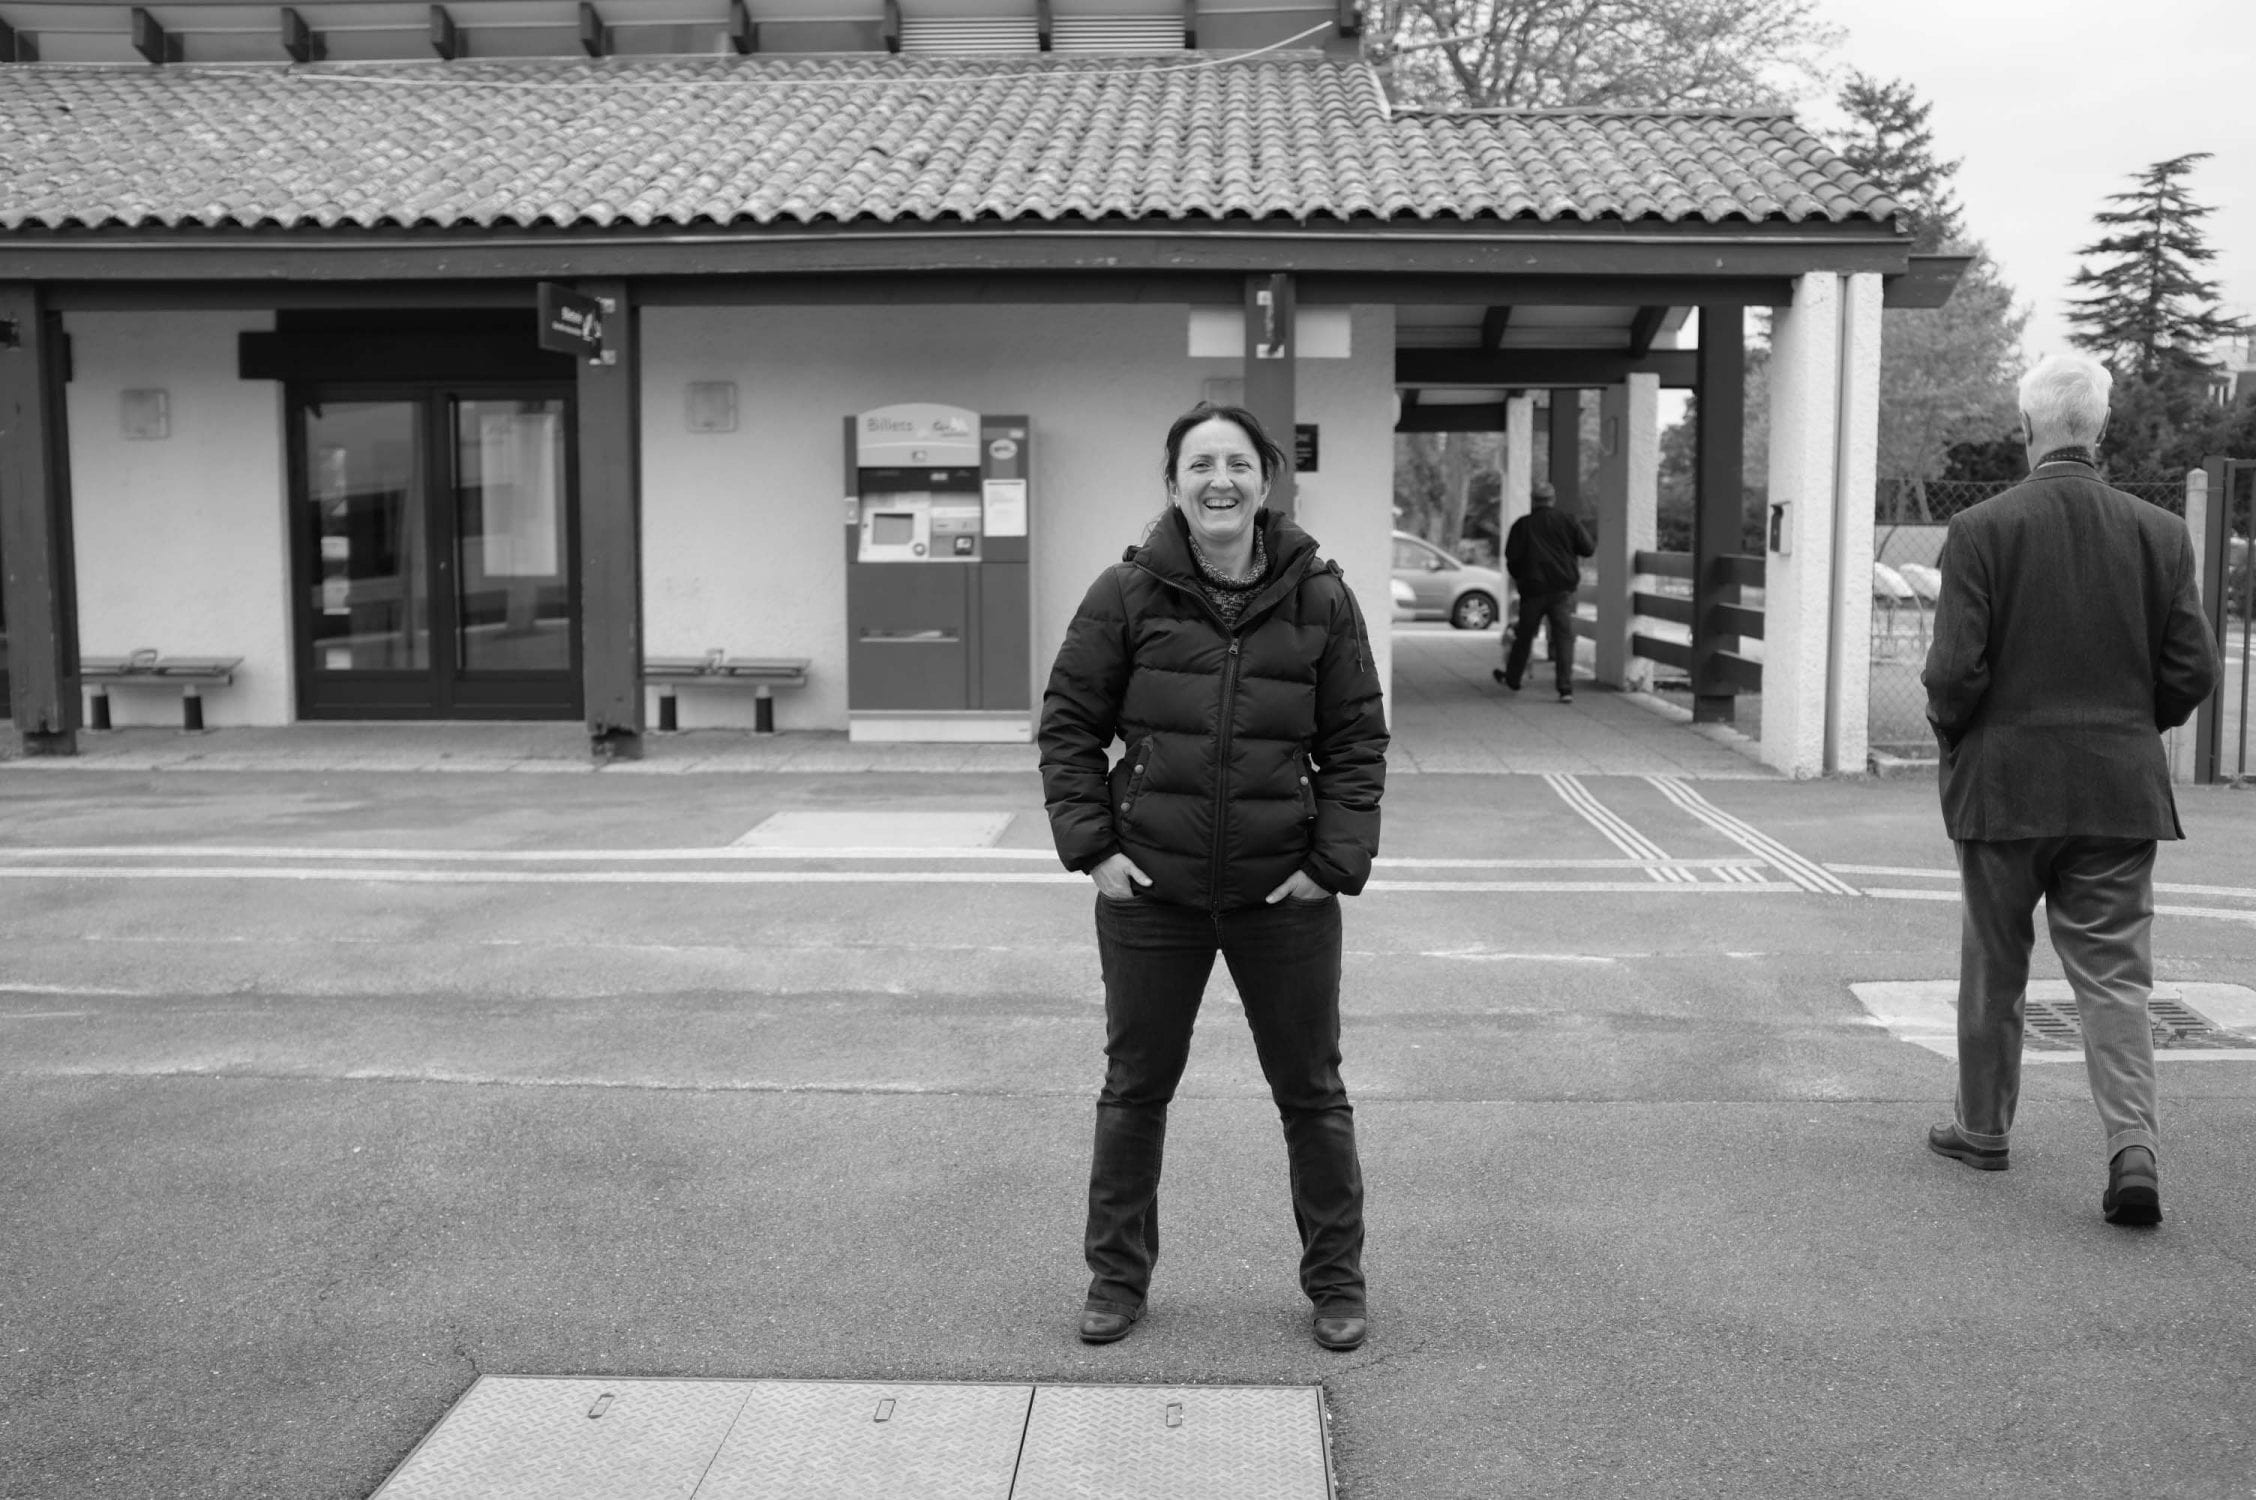 The last picture from my masterclass weekend that I took was of my host and producer Hélen Cubino, right before taking my train back to Bordeaux. A big thanks to her, without her this whole workshop masterclass would have never happened.